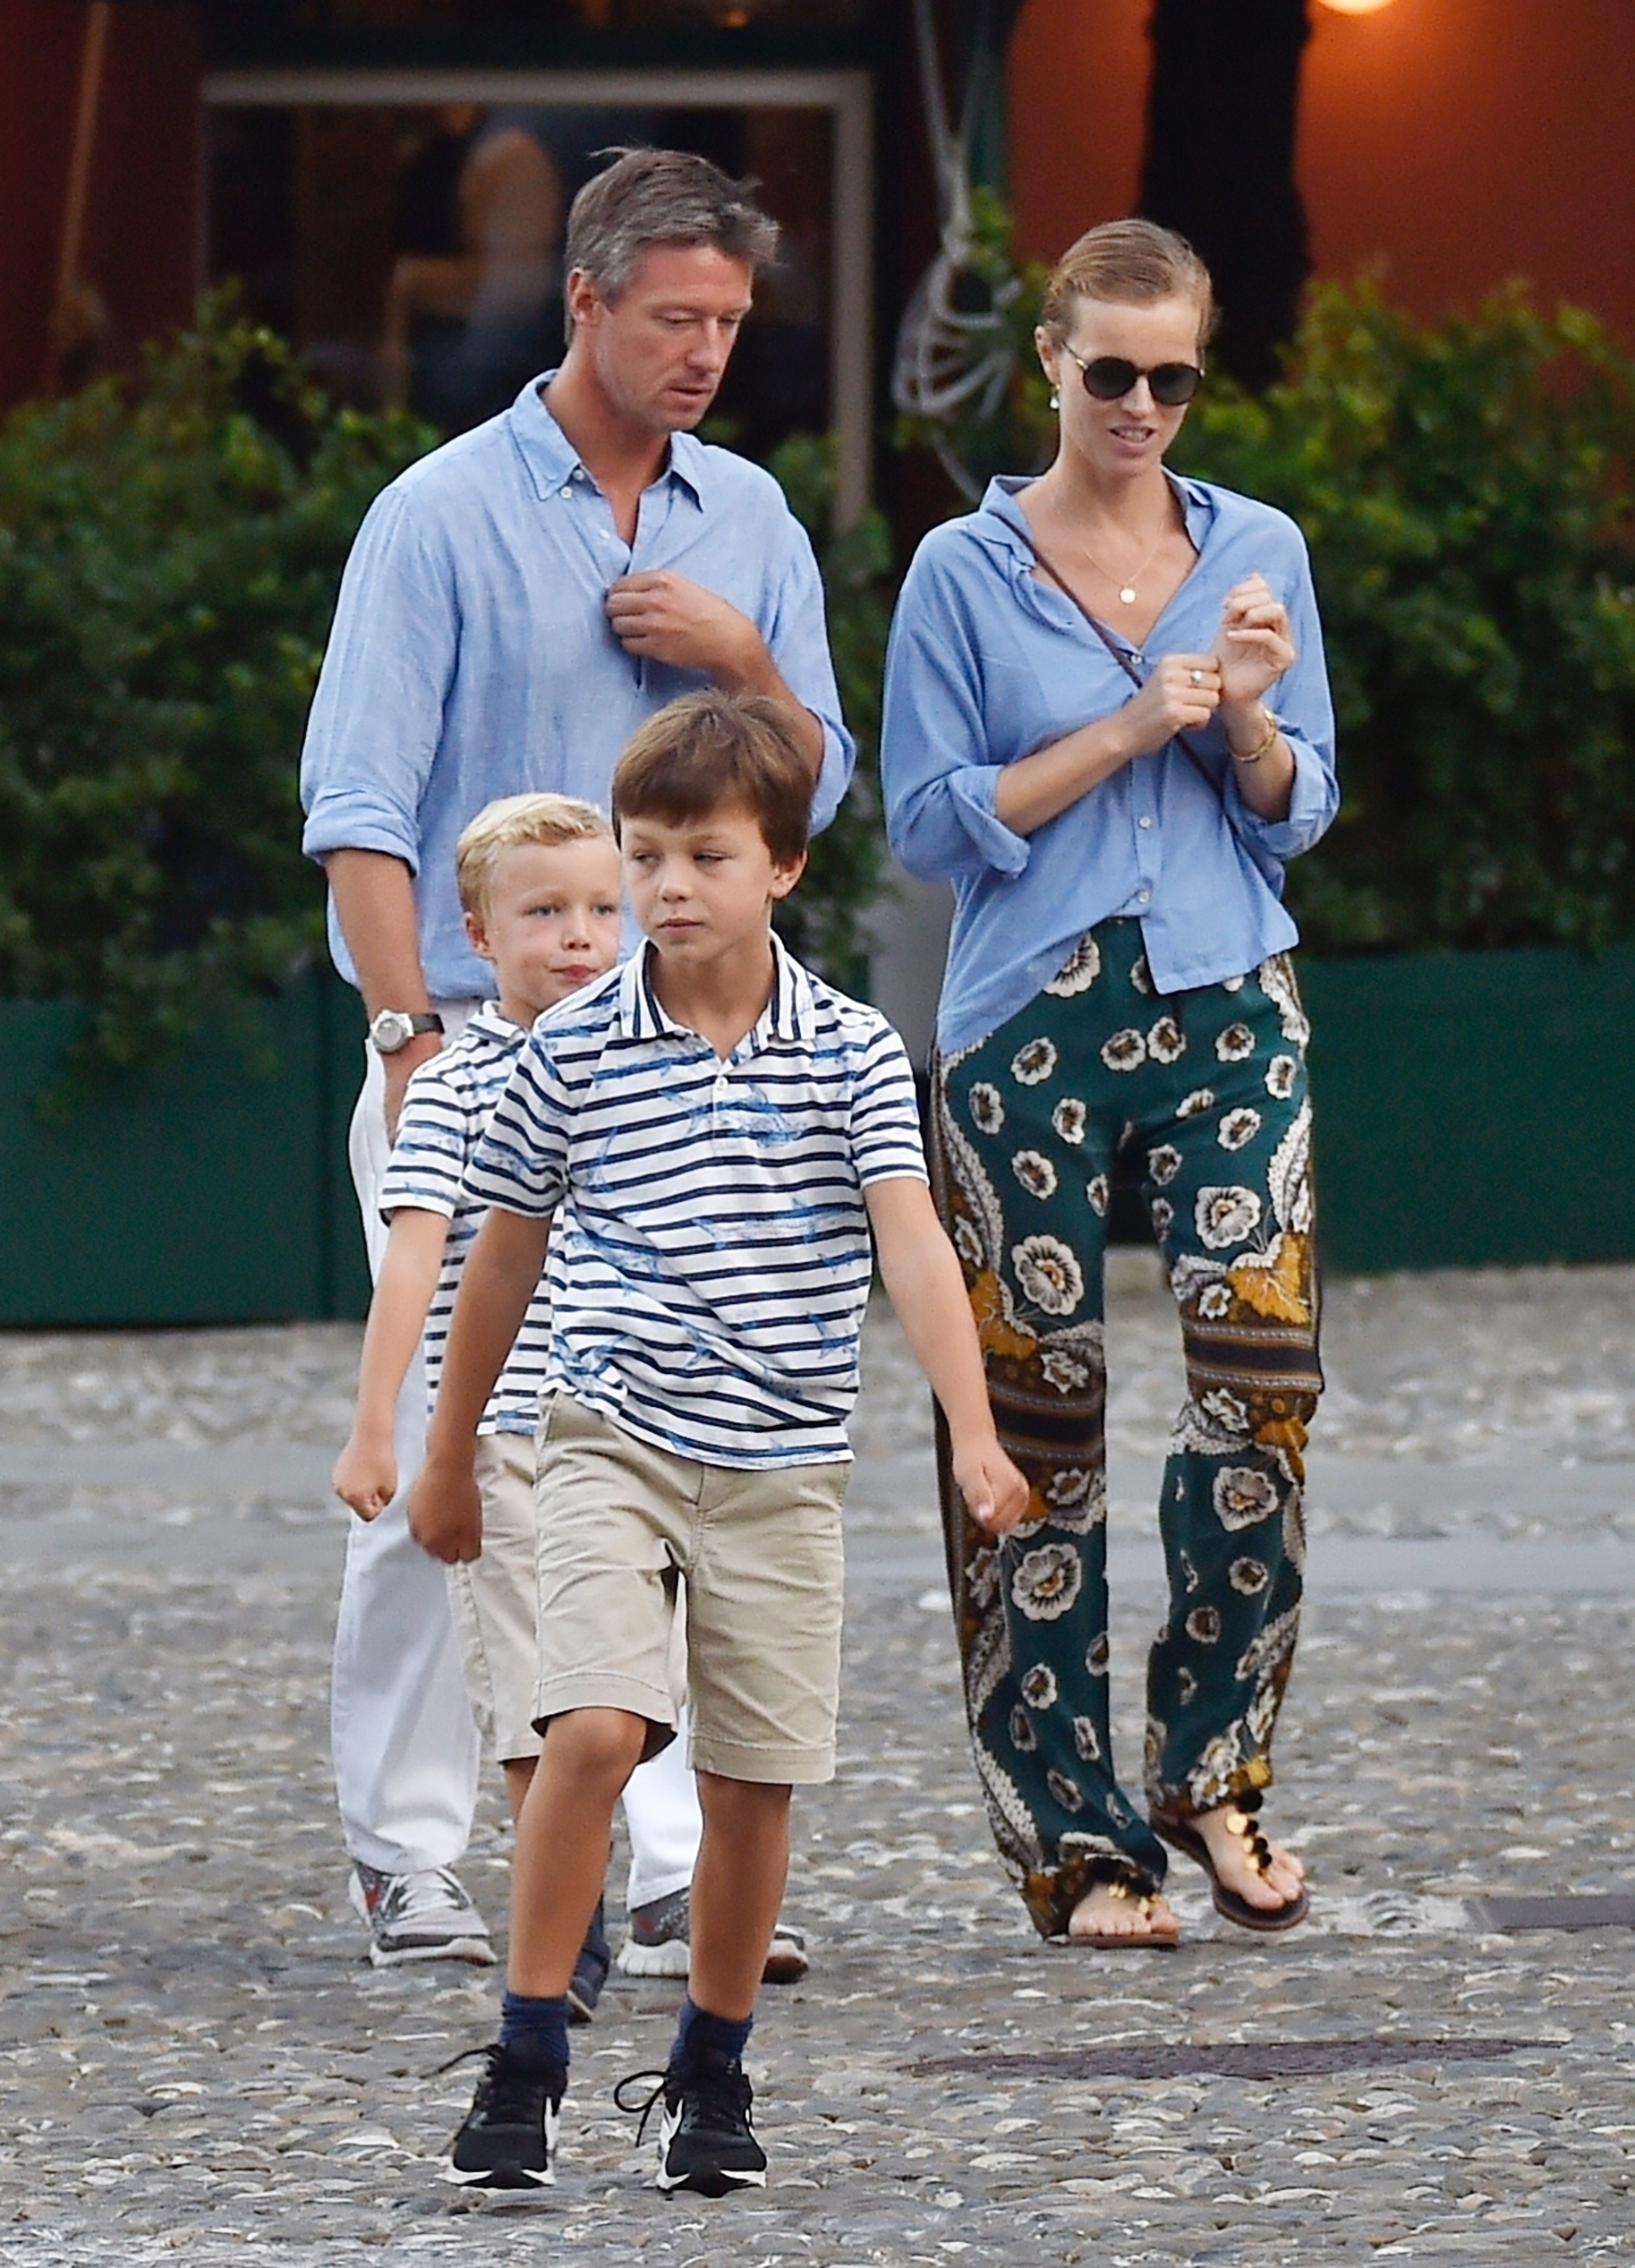 portofino, ITALY  - *EXCLUSIVE*  - Model Eva Herzigova with her husband along with their children on holiday in Portofino  BACKGRID UK 13 SEPTEMBER 2019, Image: 470807270, License: Rights-managed, Restrictions: RIGHTS: NO WEB - WORLDWIDE EXCEPT IN ITALY, Model Release: no, Credit line: Profimedia, Backgrid UK